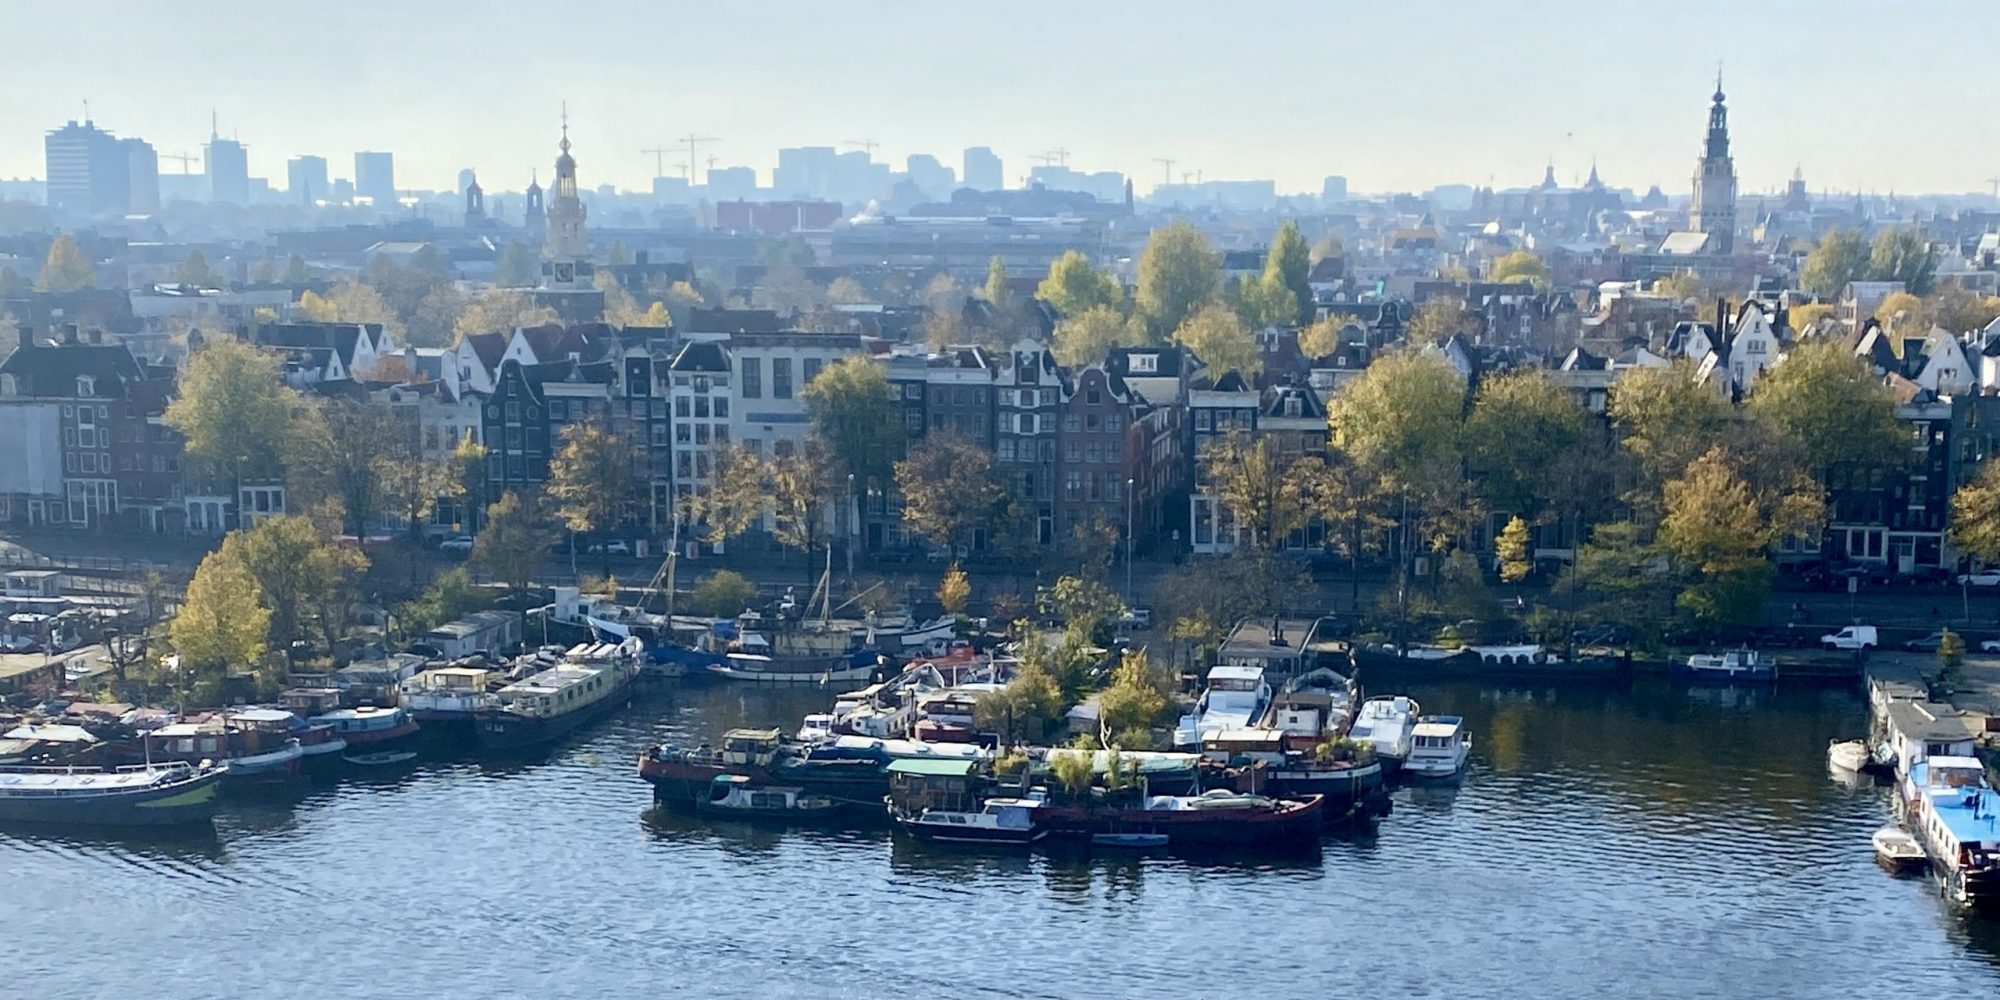 Over-tourism in Amsterdam